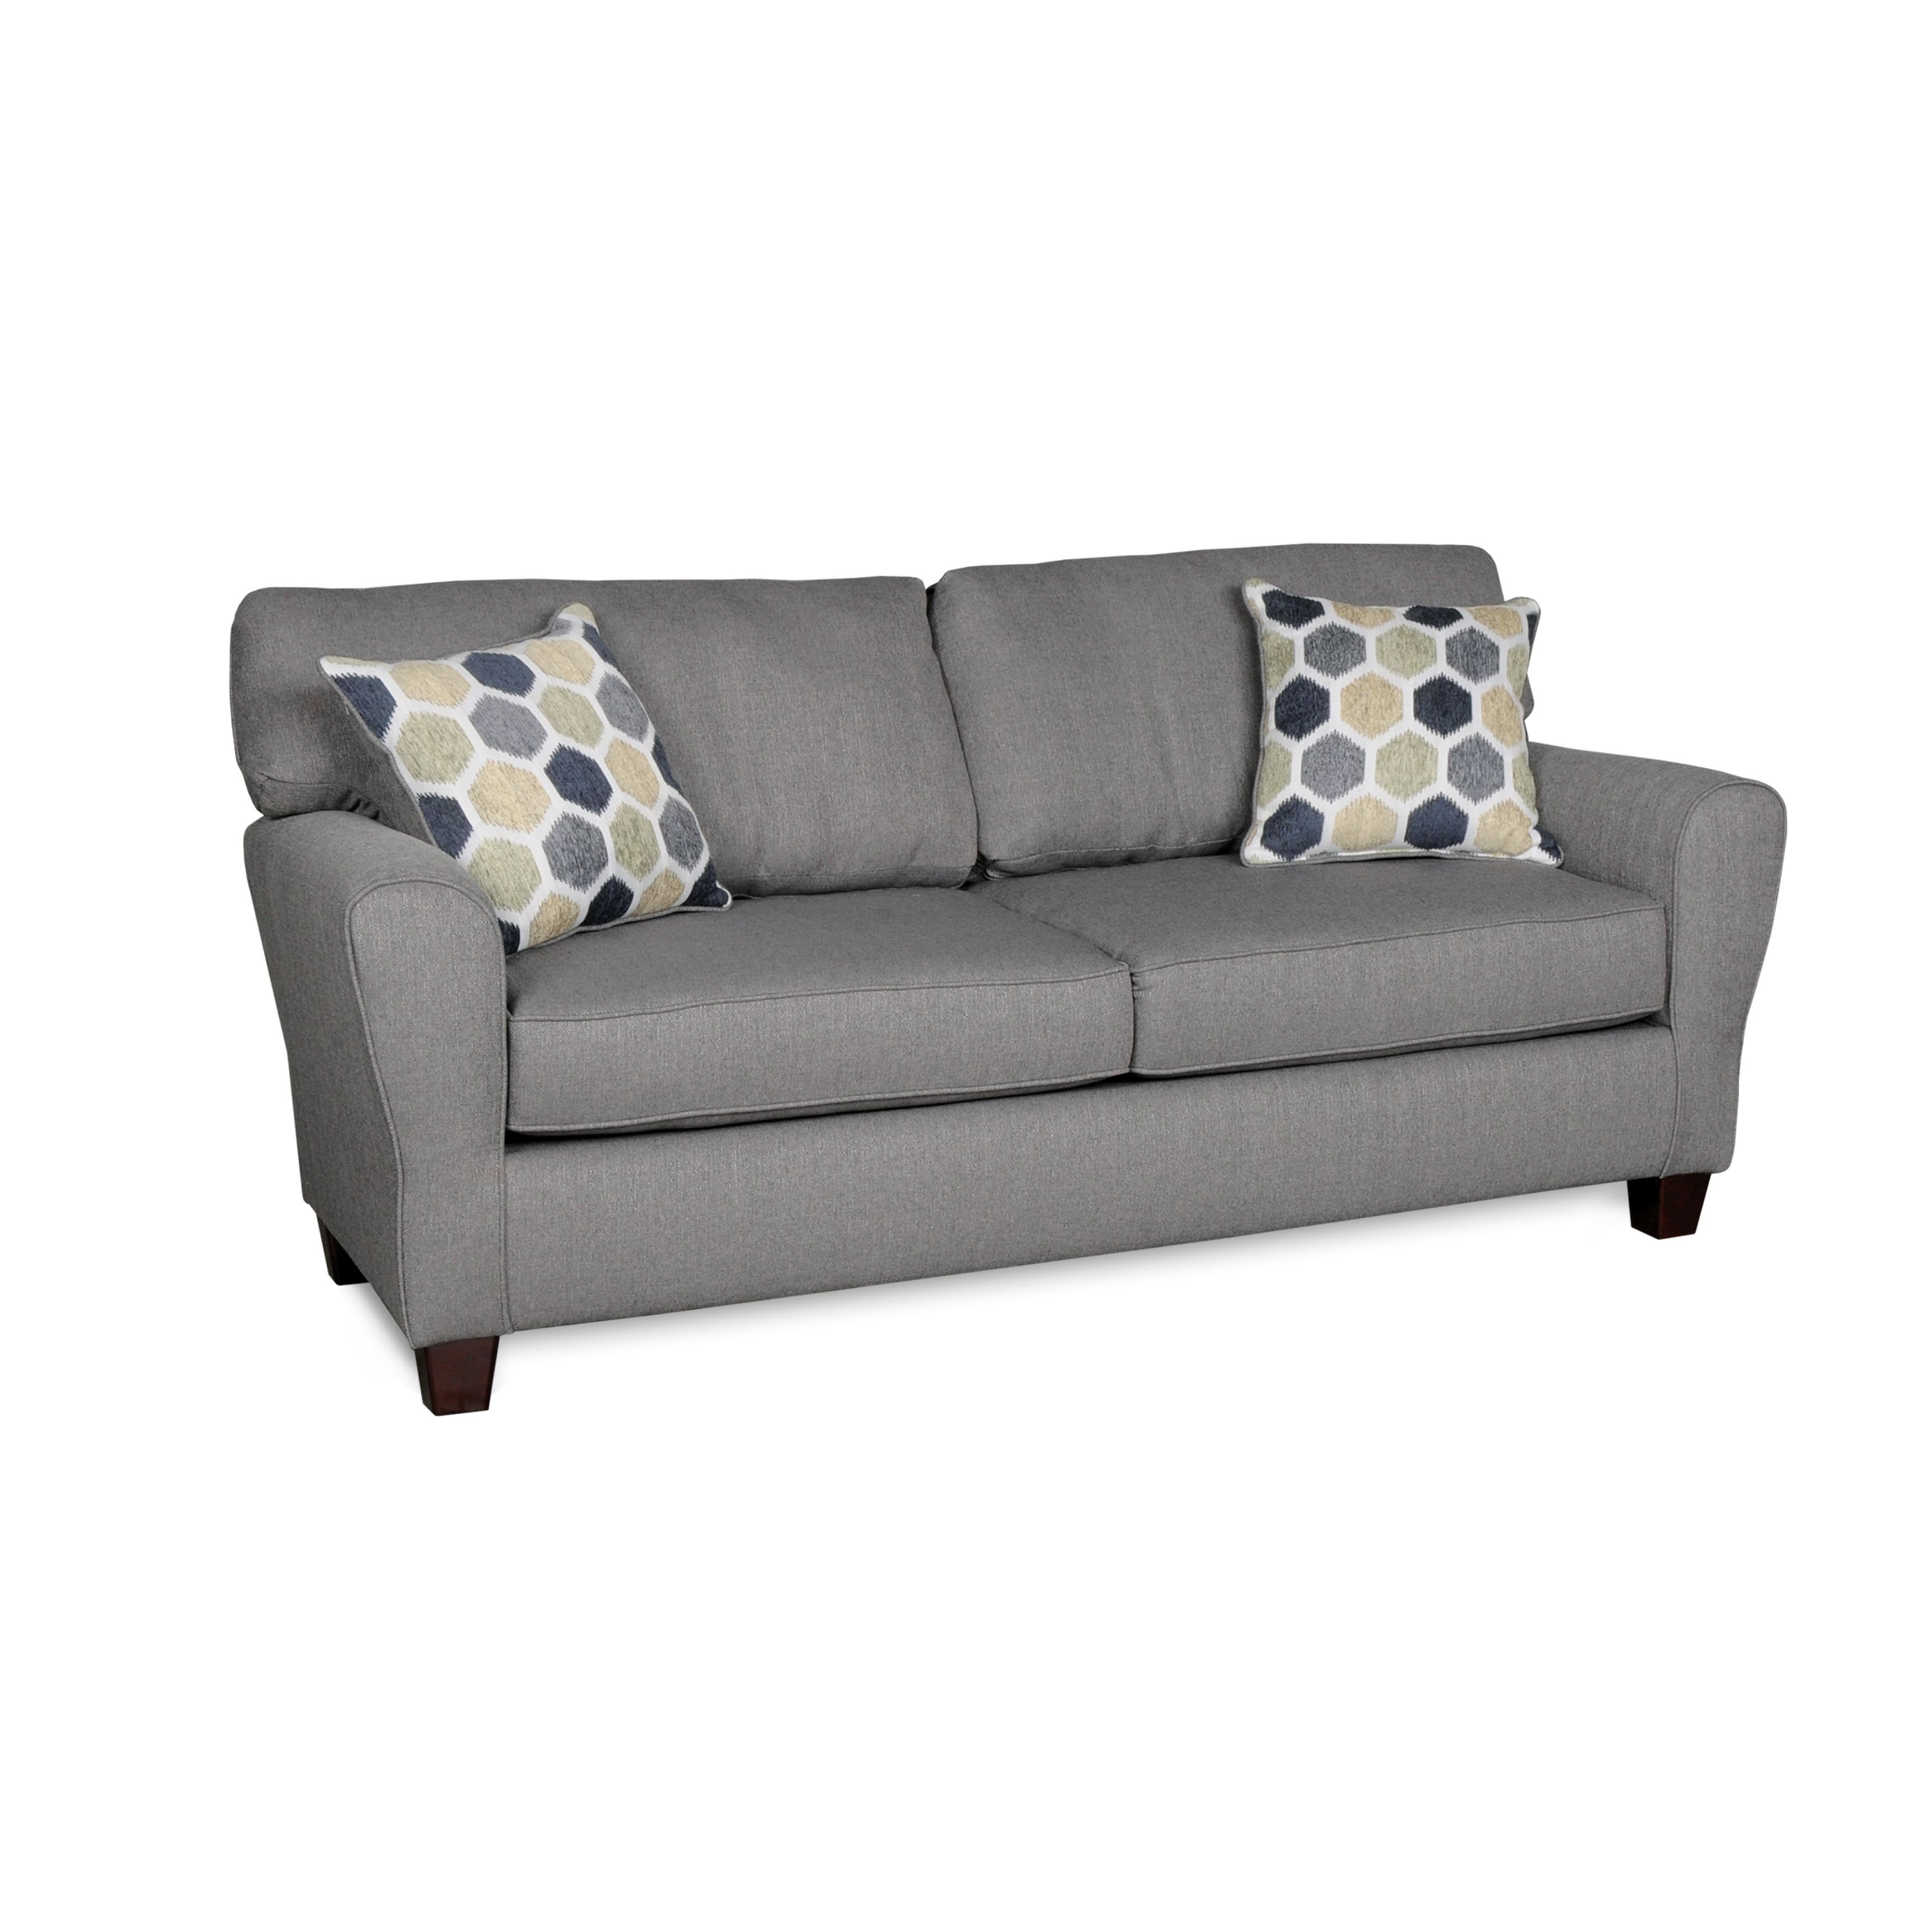 Best Sofa Deals: Buy Sofas & Couches Online At Overstock.com